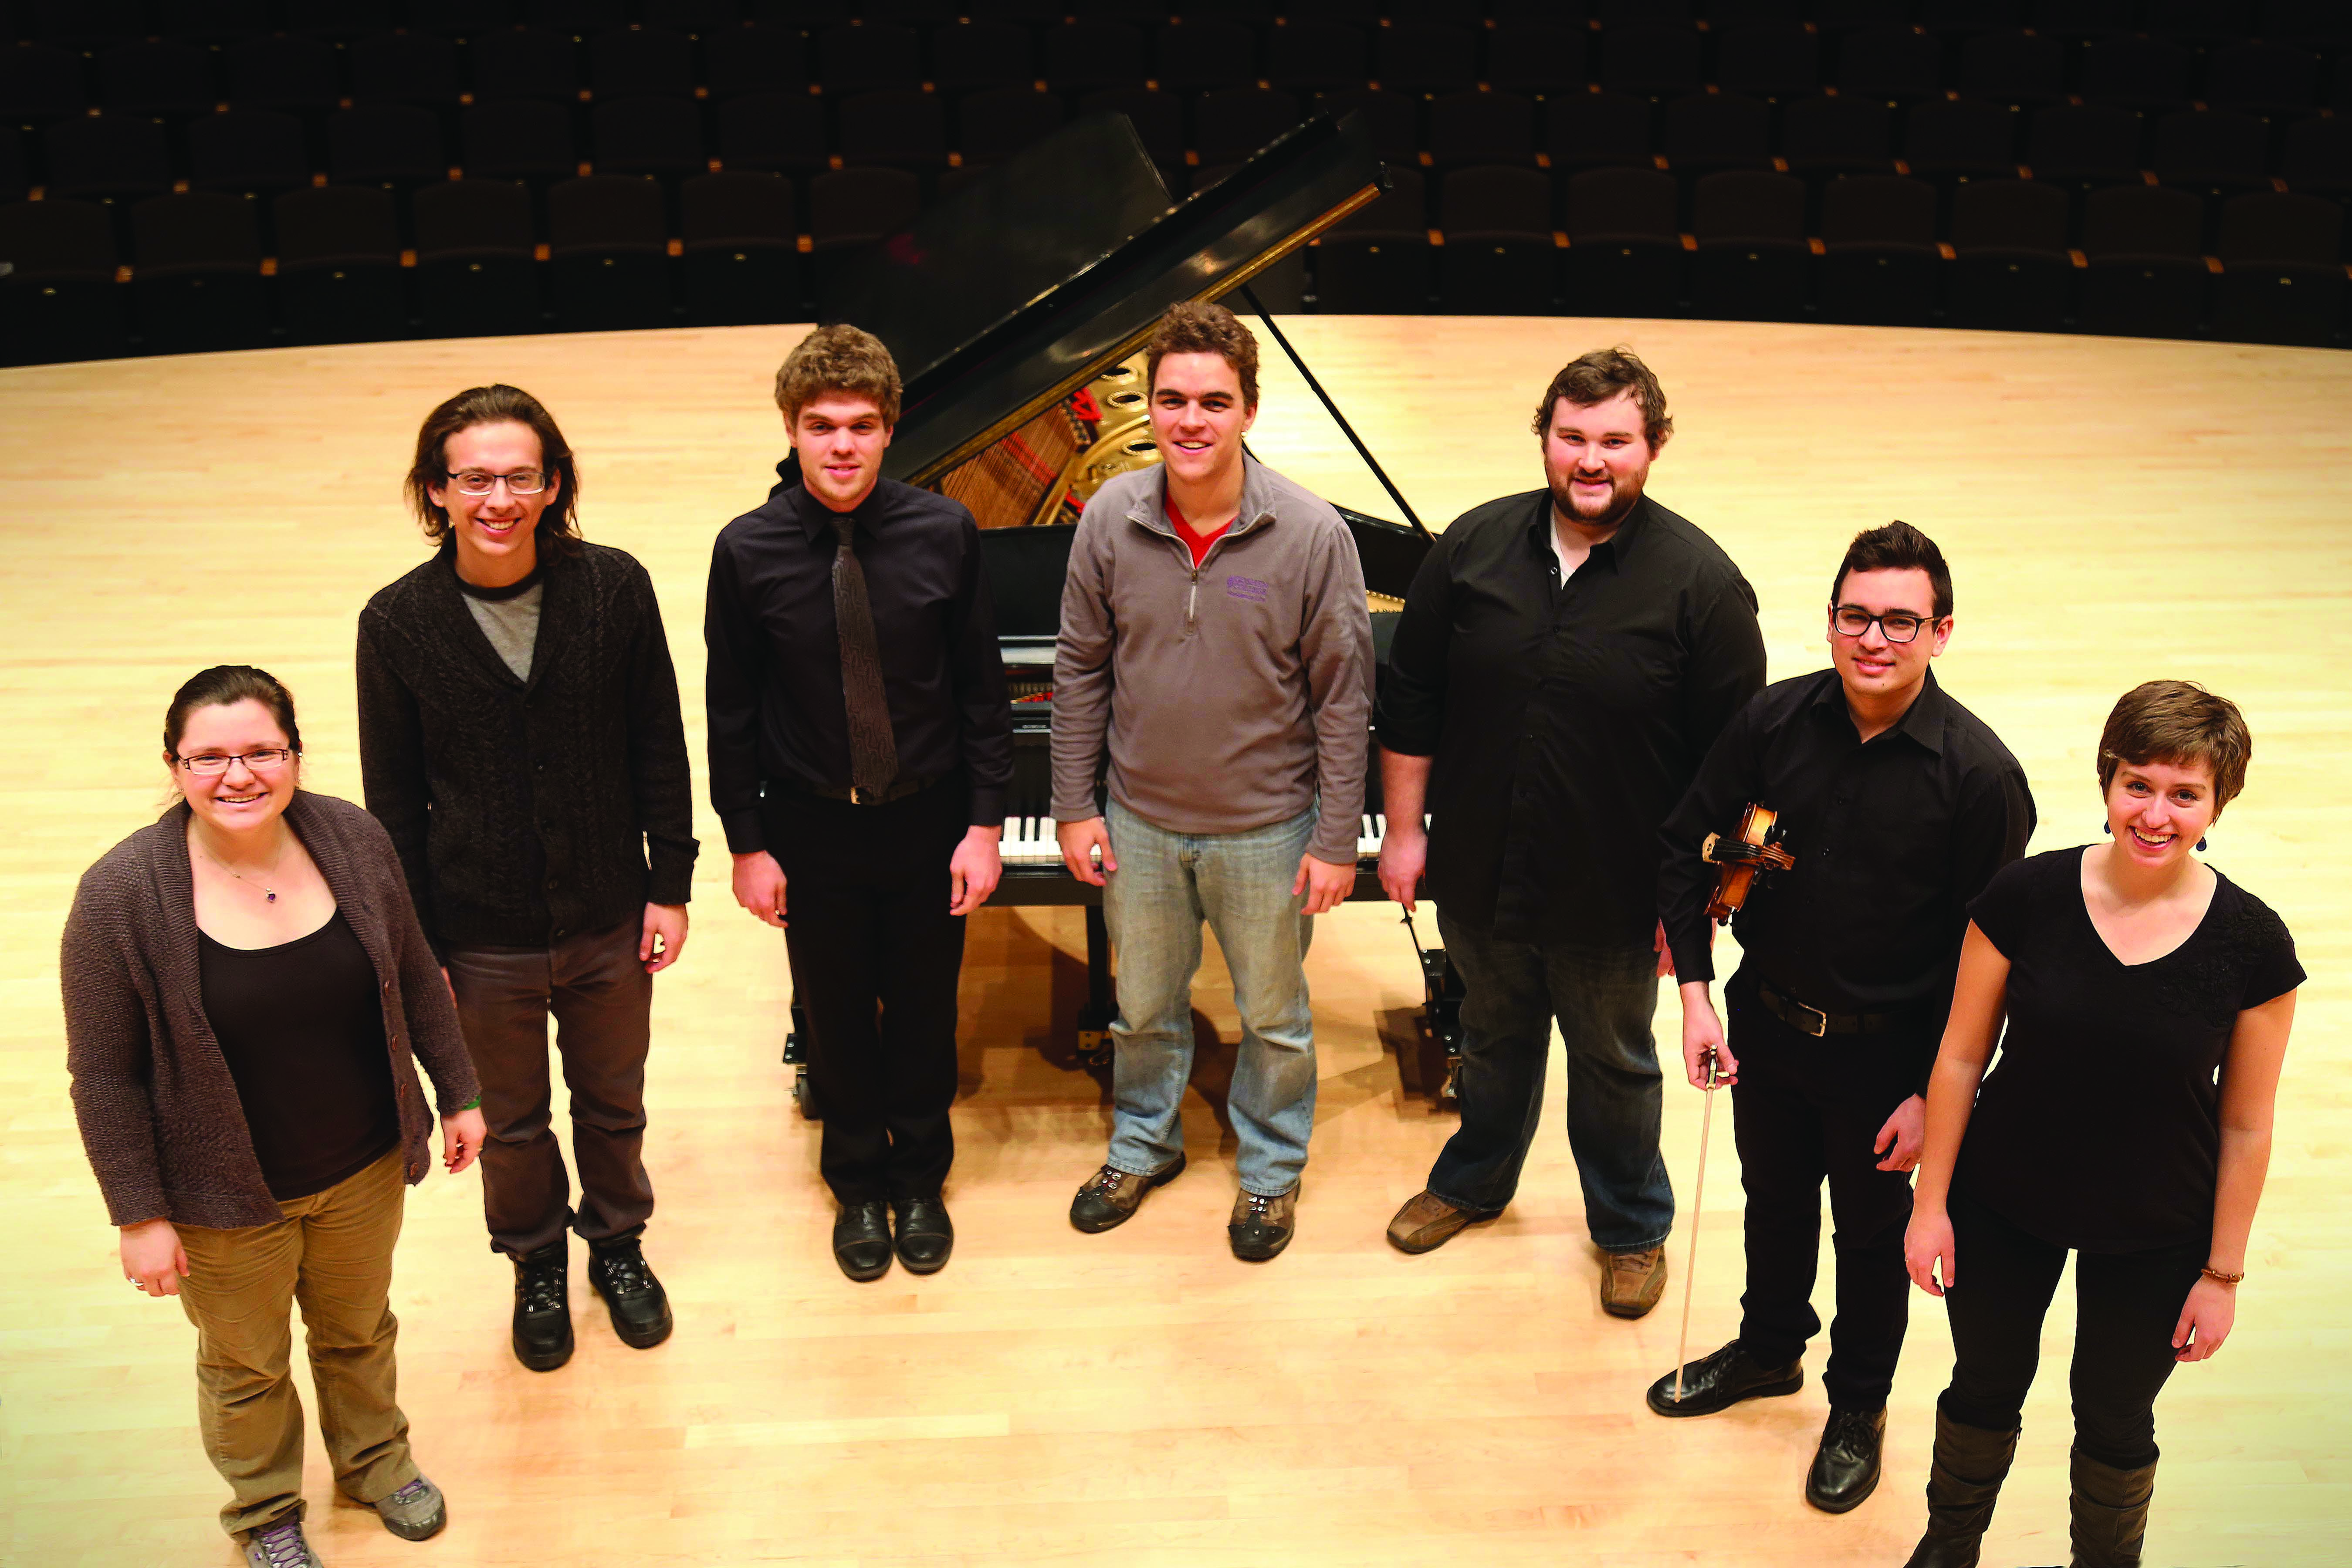 The seven winners of the Concerto-Aria competition pose for a picture in front of a grand piano in Sauder Concert Hall